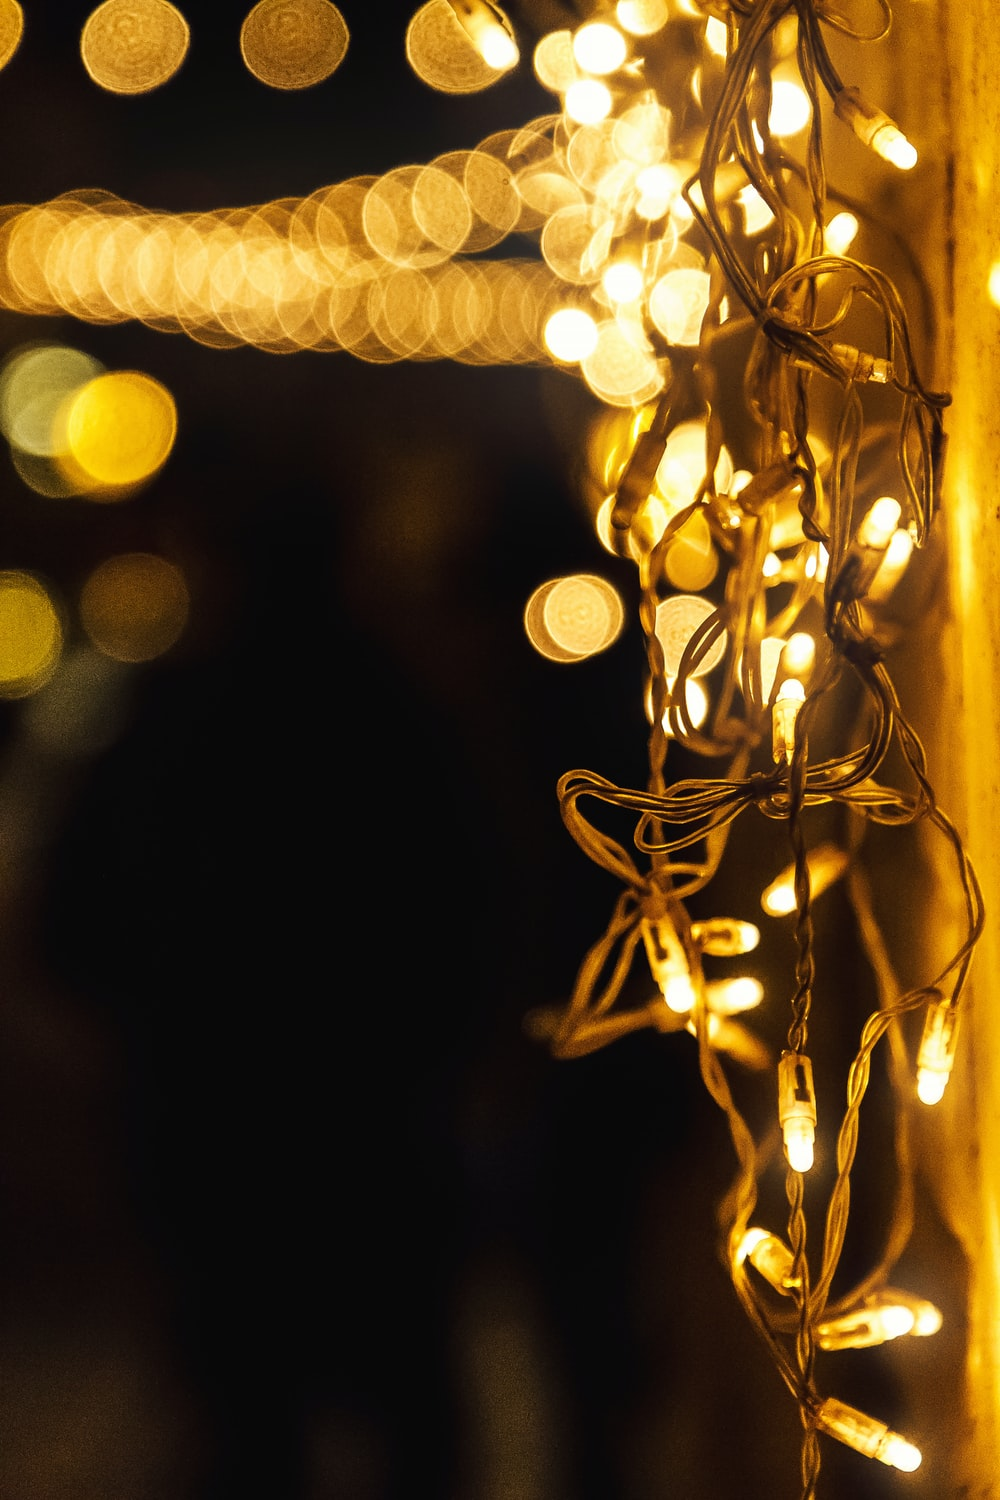 yellow string lights in bokeh photography